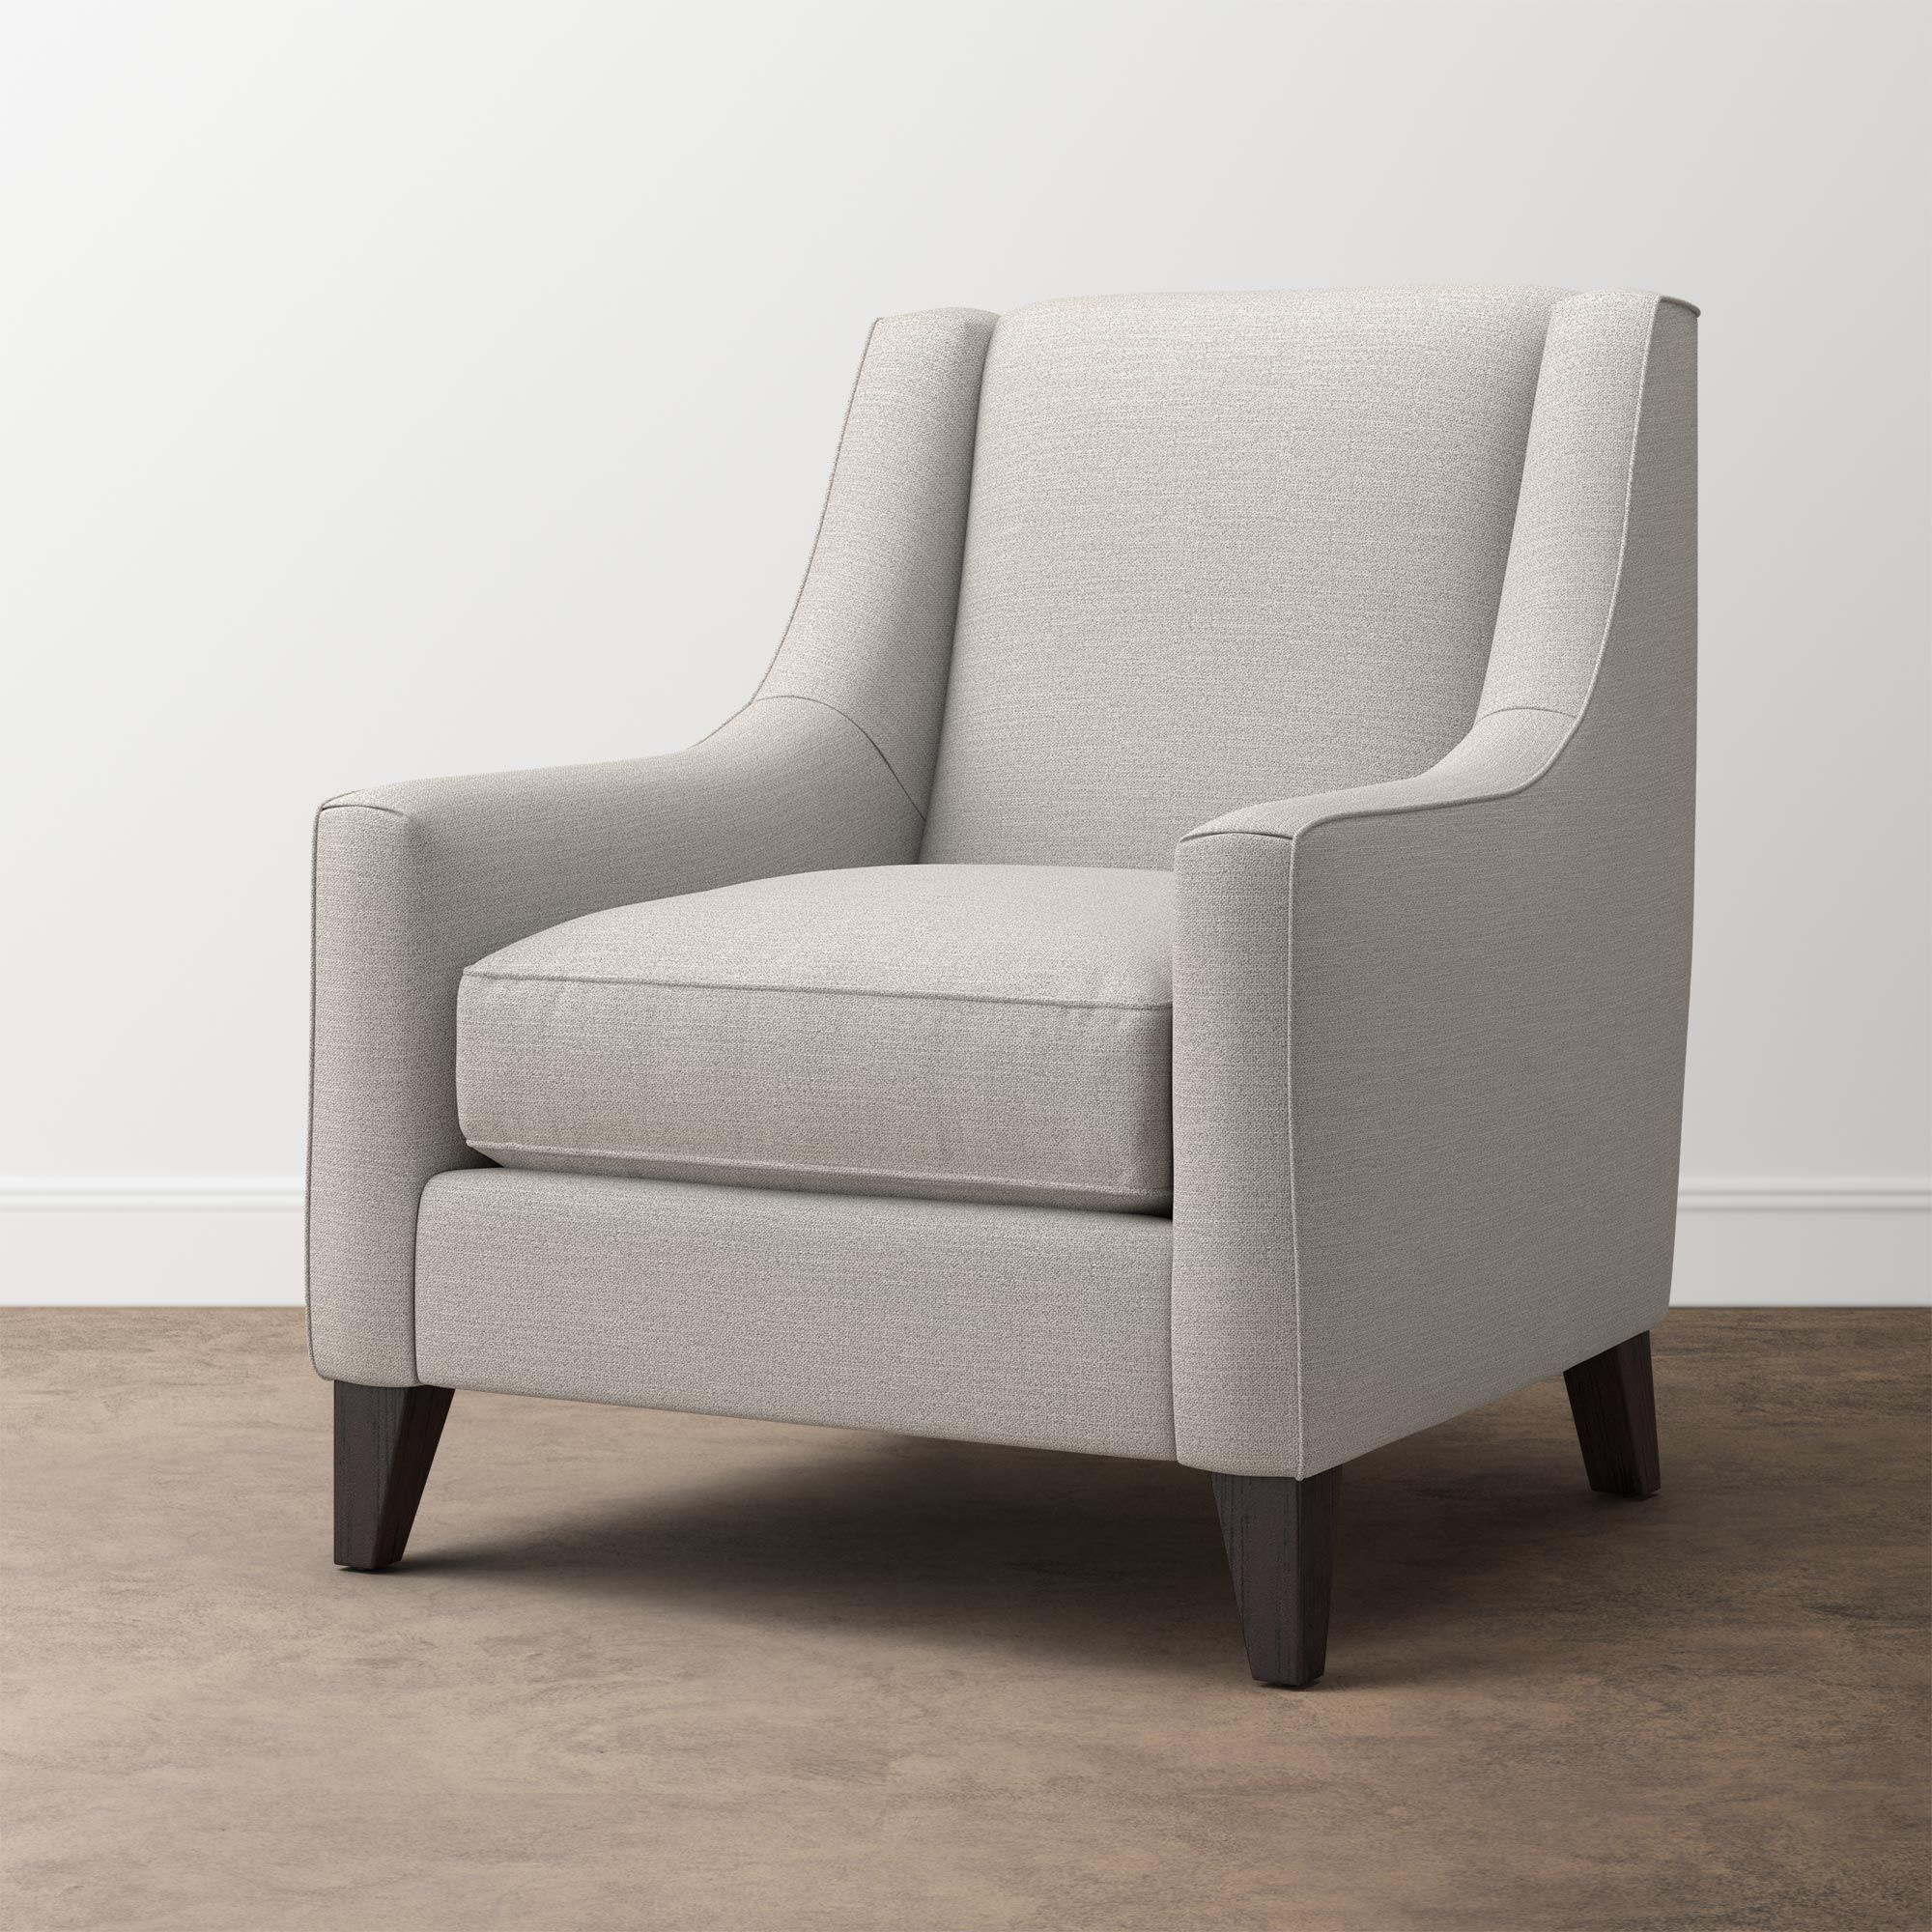 Lauren Accent Chair In 2021 Bassett Furniture Couches Living Room Living Room Chairs